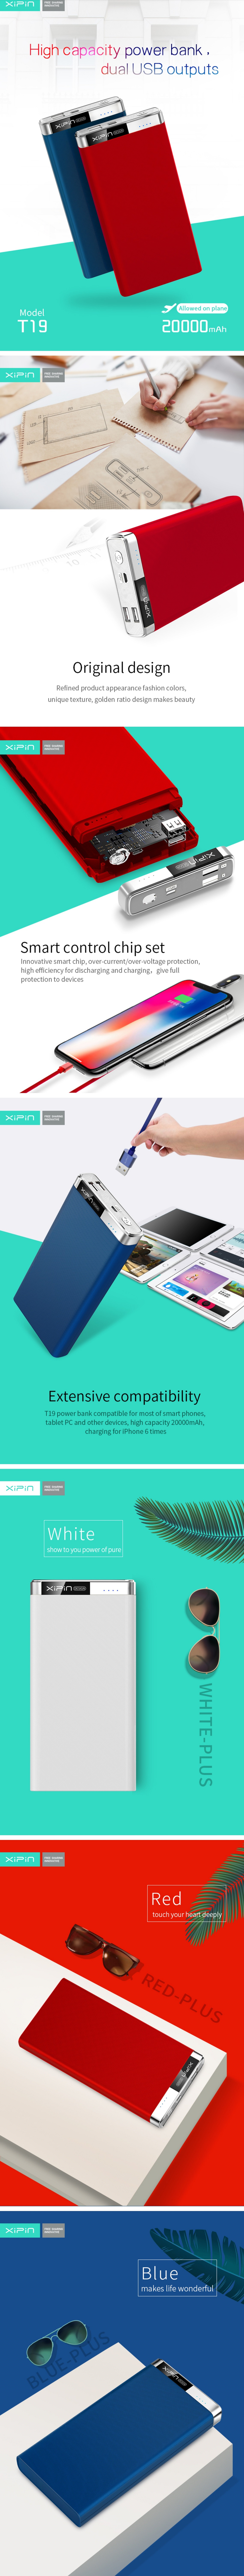 Xipin 20000mAh Blue Power Bank 5V2A Dual USB Output Powerbank Rubber-coat Housing and LED Display T19